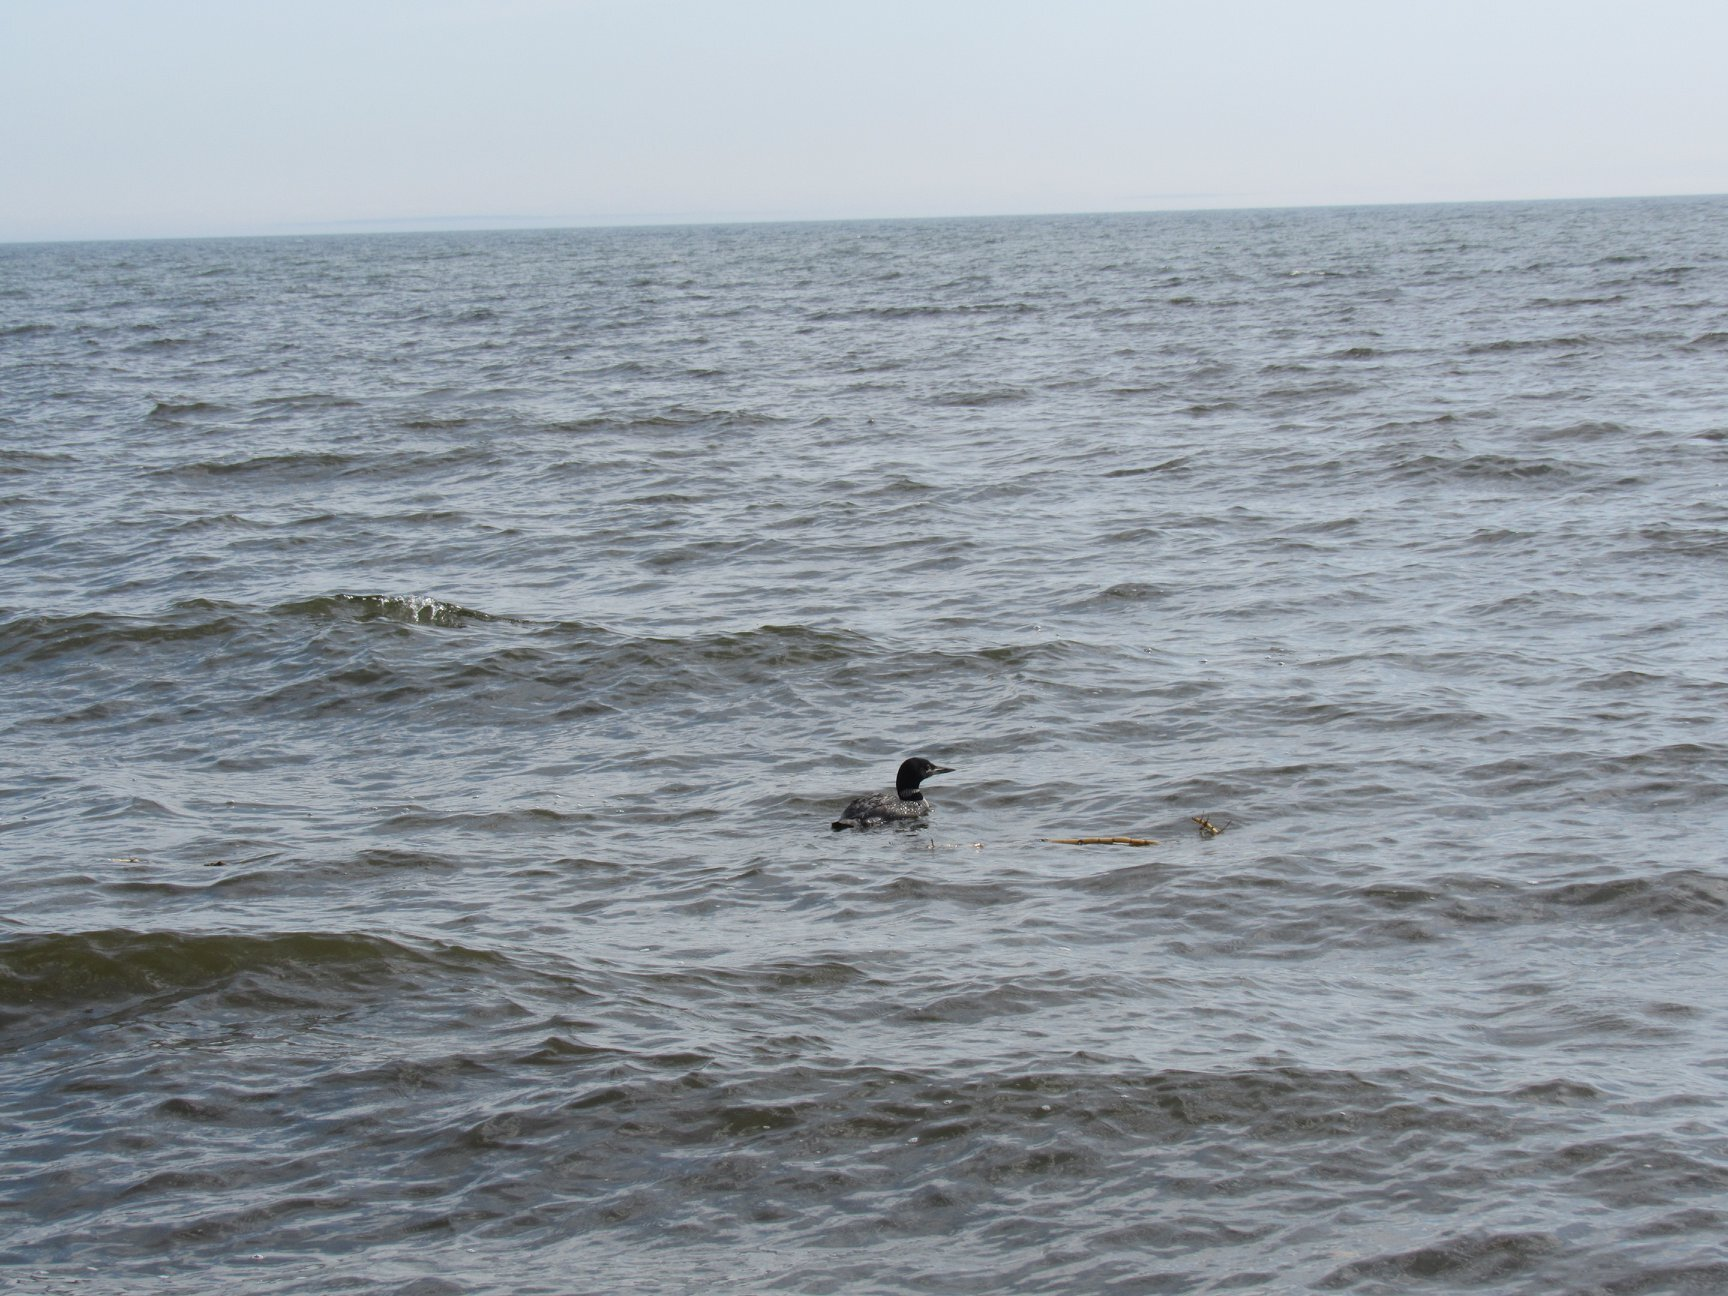 Much enlarged Loon was delighted to be in wild water!